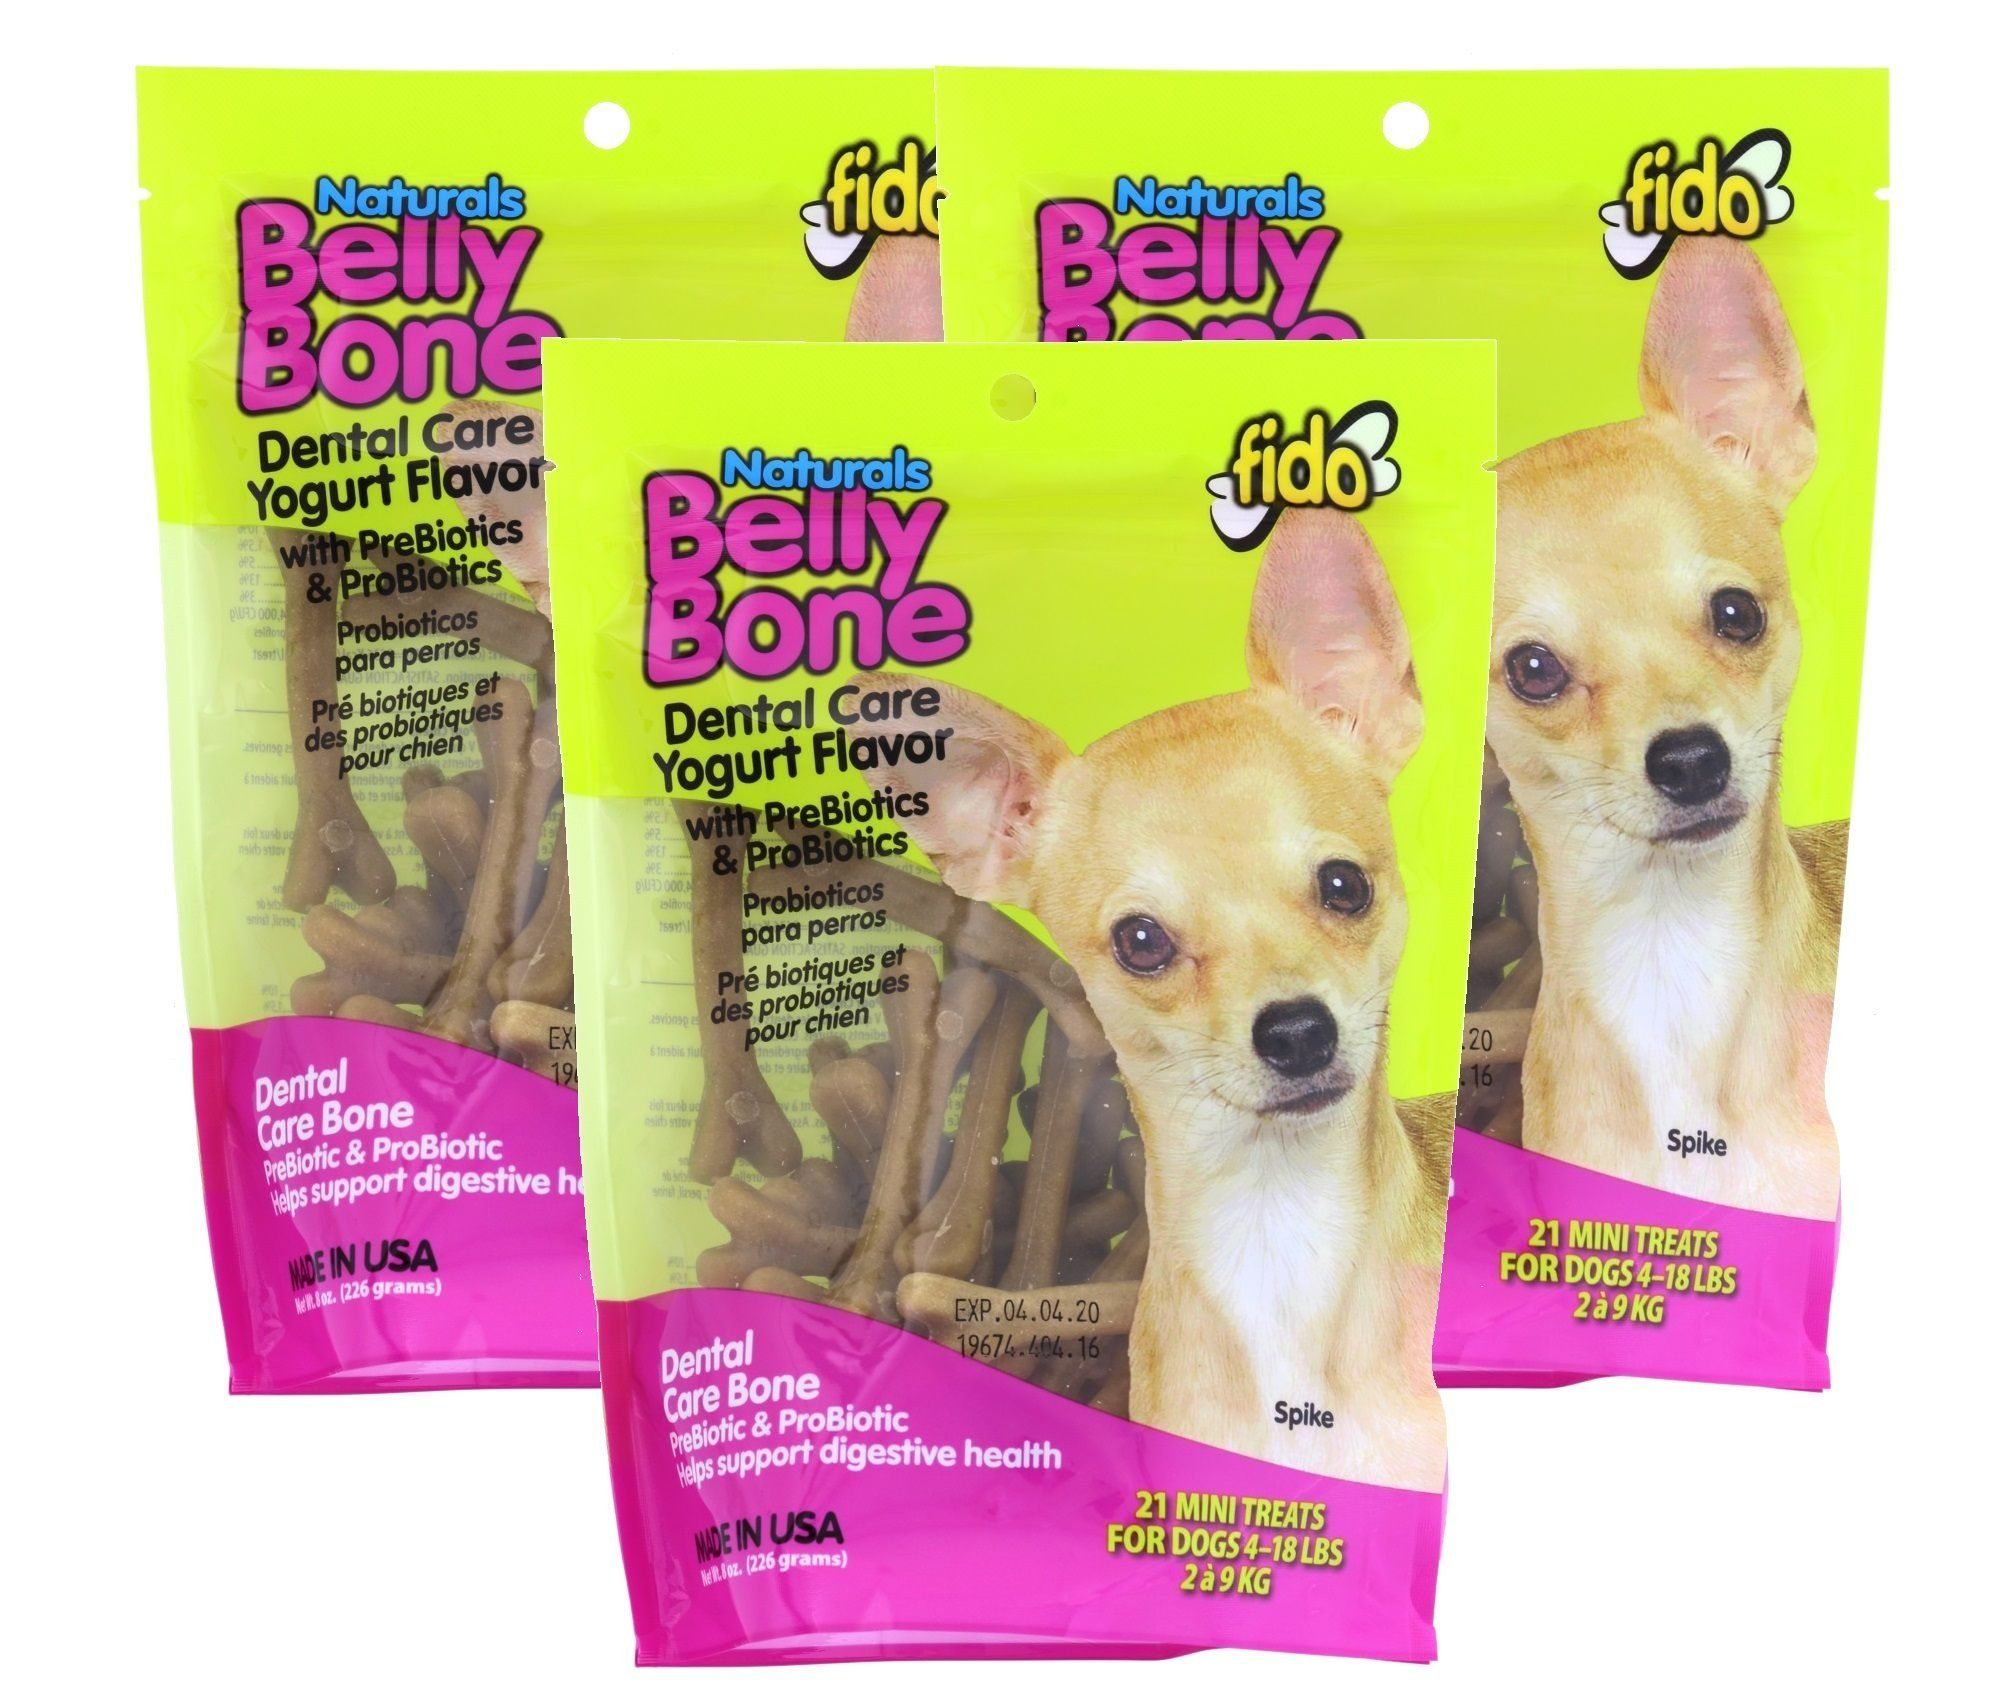 Fido Dental Care Belly Bones For Dogs Yogurt Flavor 21 Mini Treats